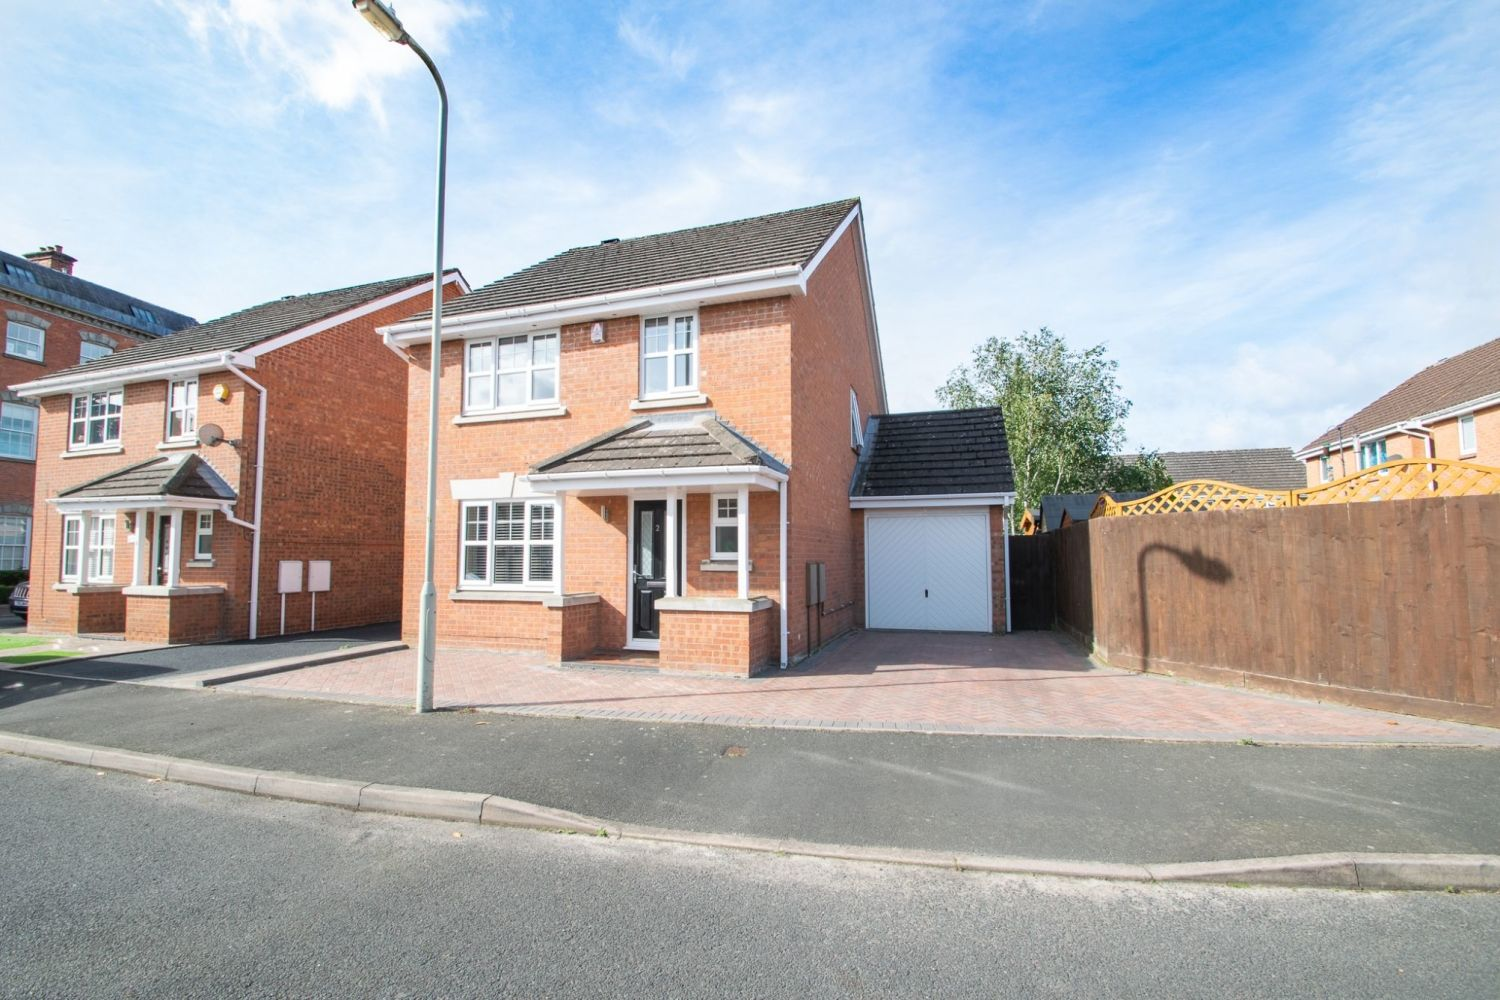 3 bed detached for sale in Batchelor Close, Amblecote 1